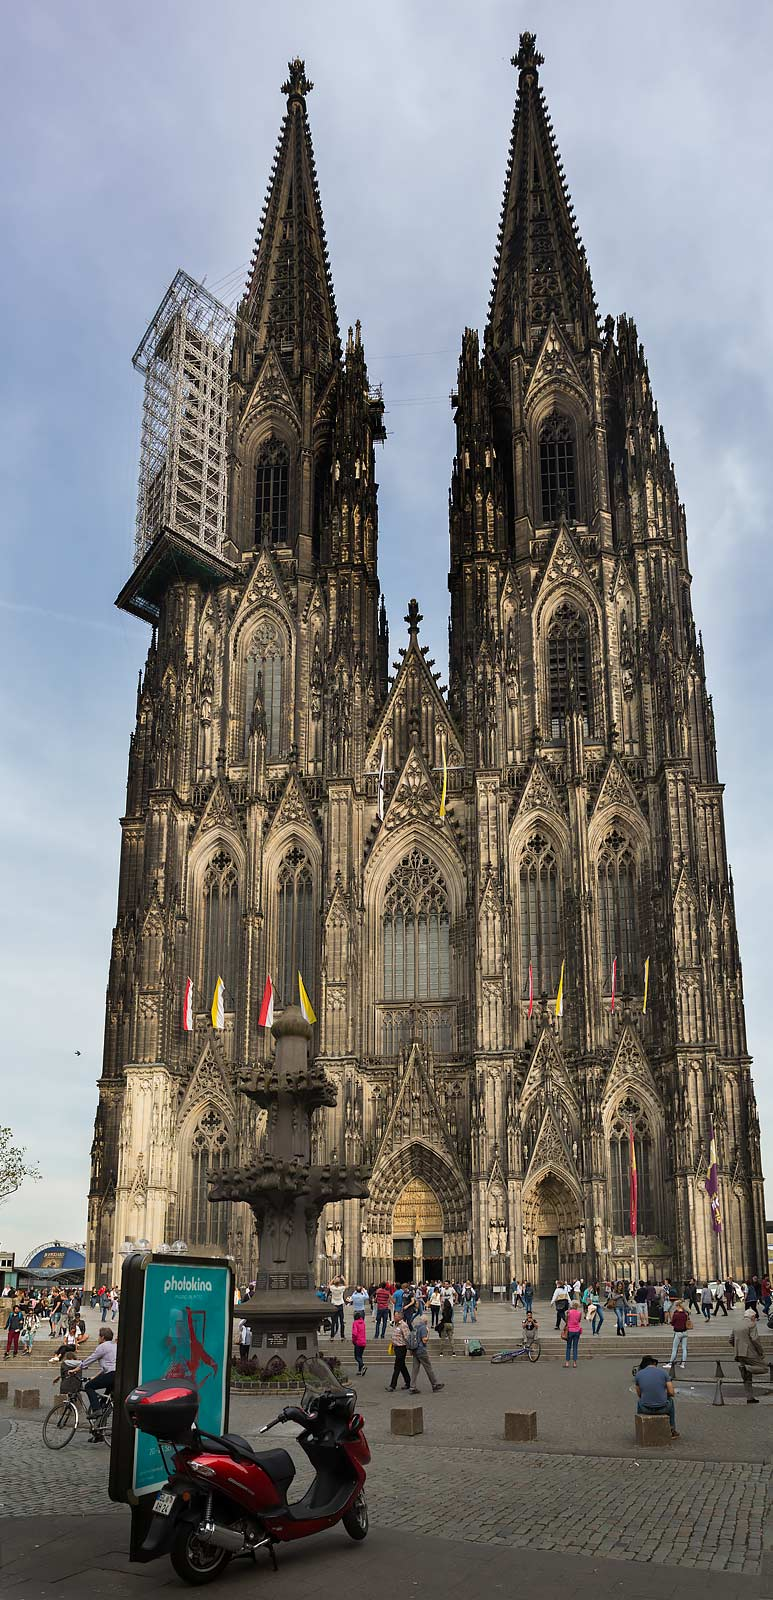 Pascha in koln cologne germany - 5 8